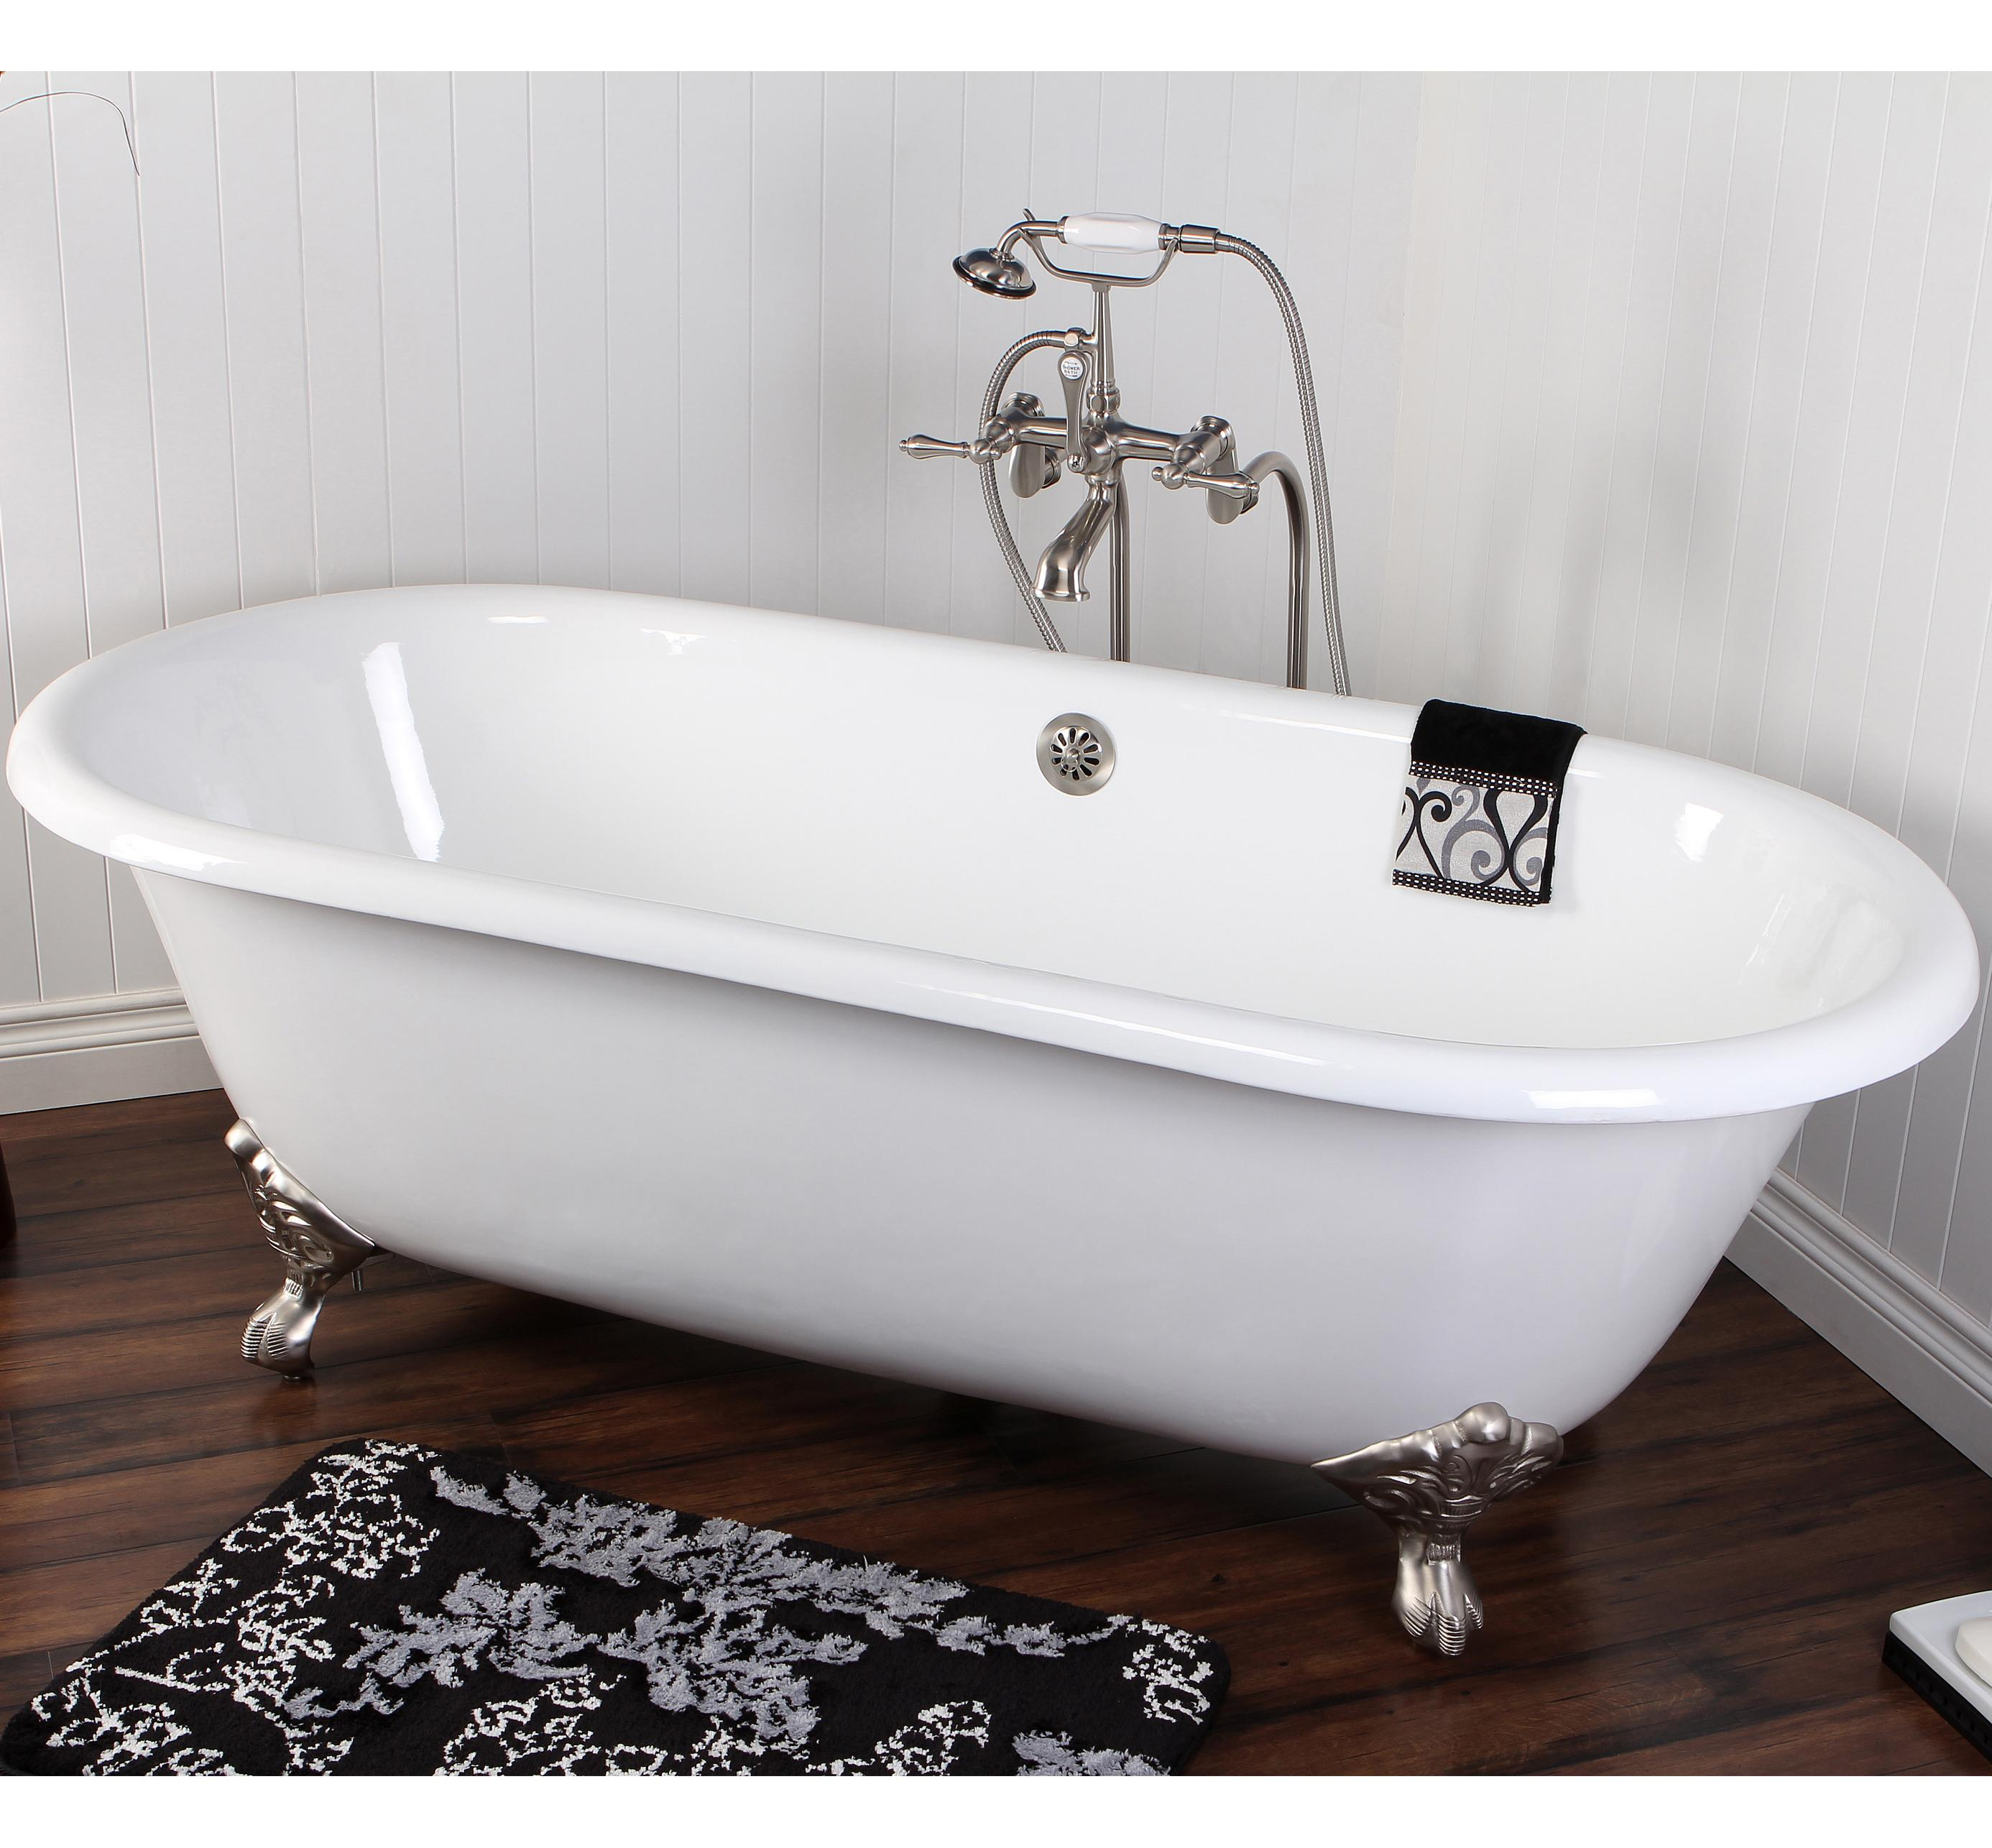 kingston brass aqua eden vctnd663013nb1 cast iron double ended clawfoot bathtub with chrome feet. Black Bedroom Furniture Sets. Home Design Ideas